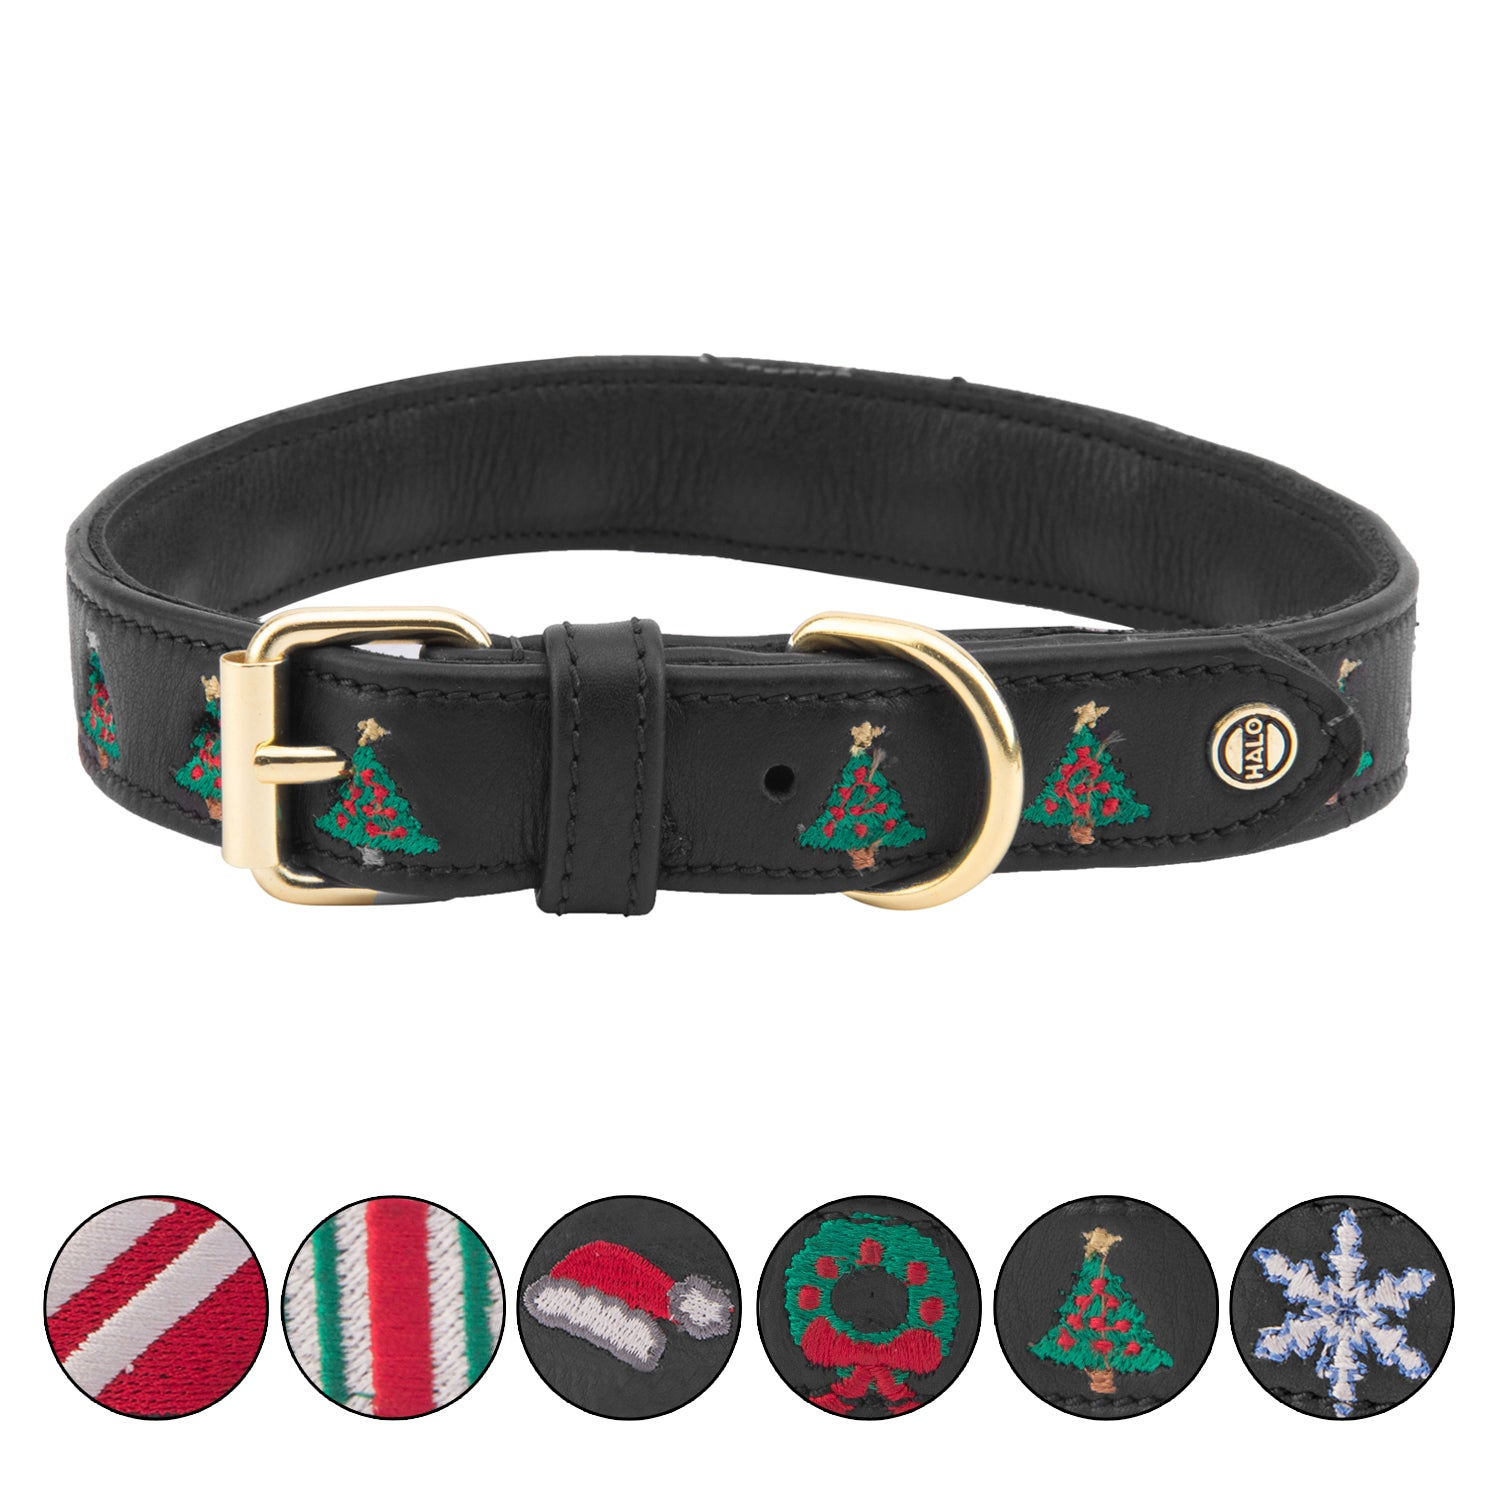 Dog Collar - Leather with Christmas Christmas Tree Embroidery - Halo - Breeches.com